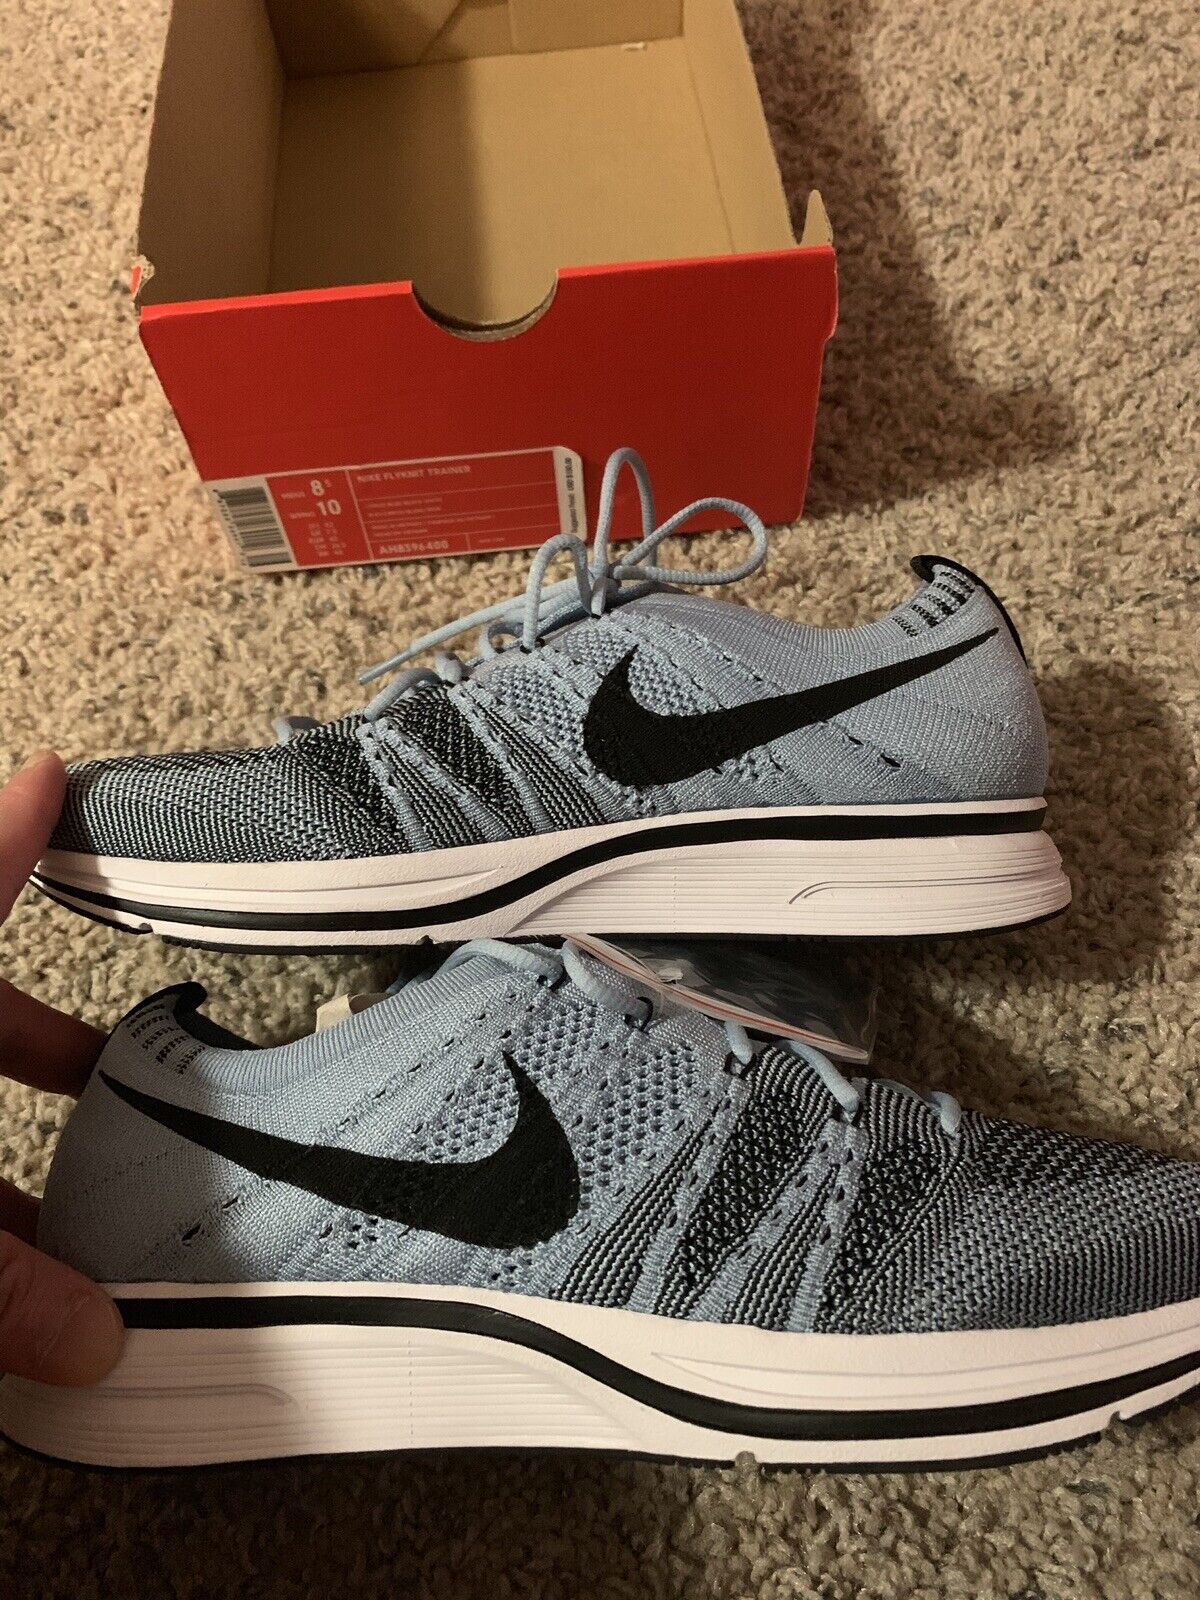 2017 NIKE FLYKNIT TRAINER SHOES CIRRUS blueE BLACK AH8396-400 MEN'S SIZE 8.5 NEW